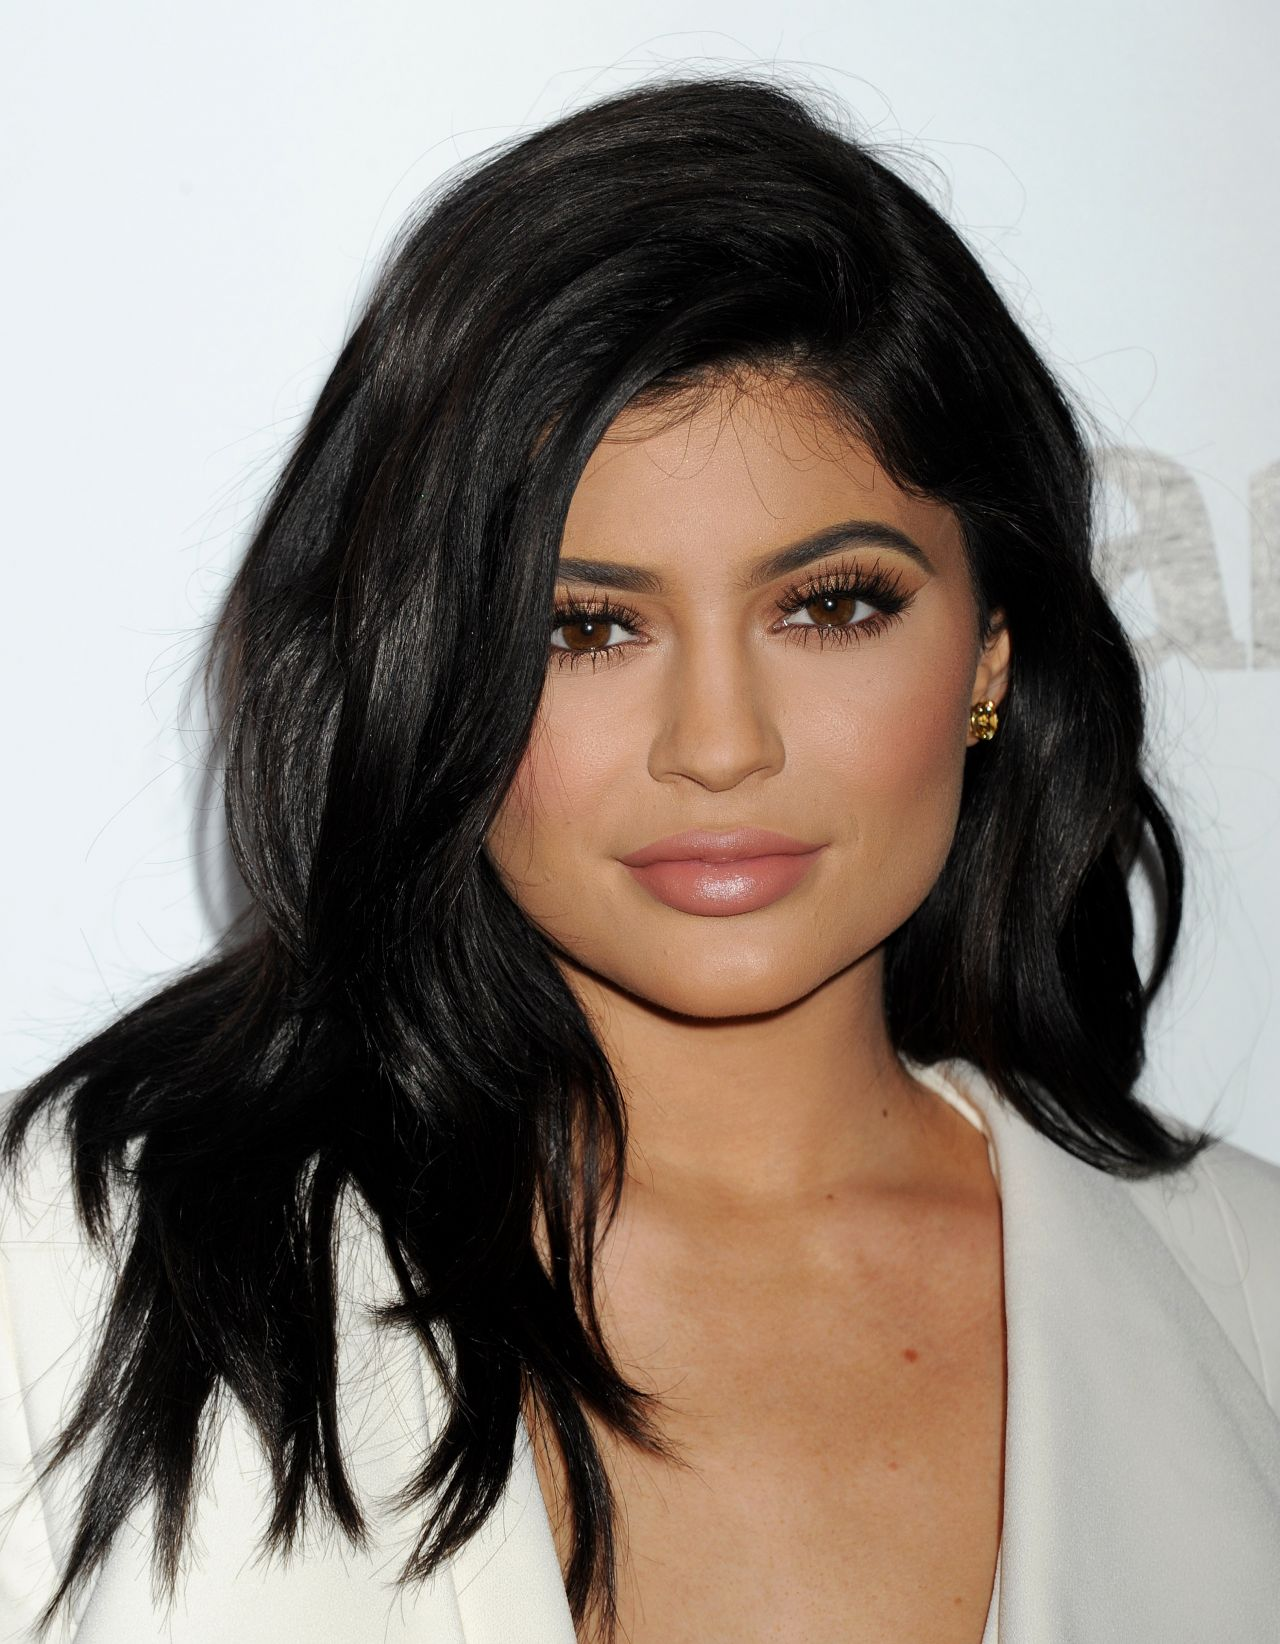 kylie jenner - photo #17